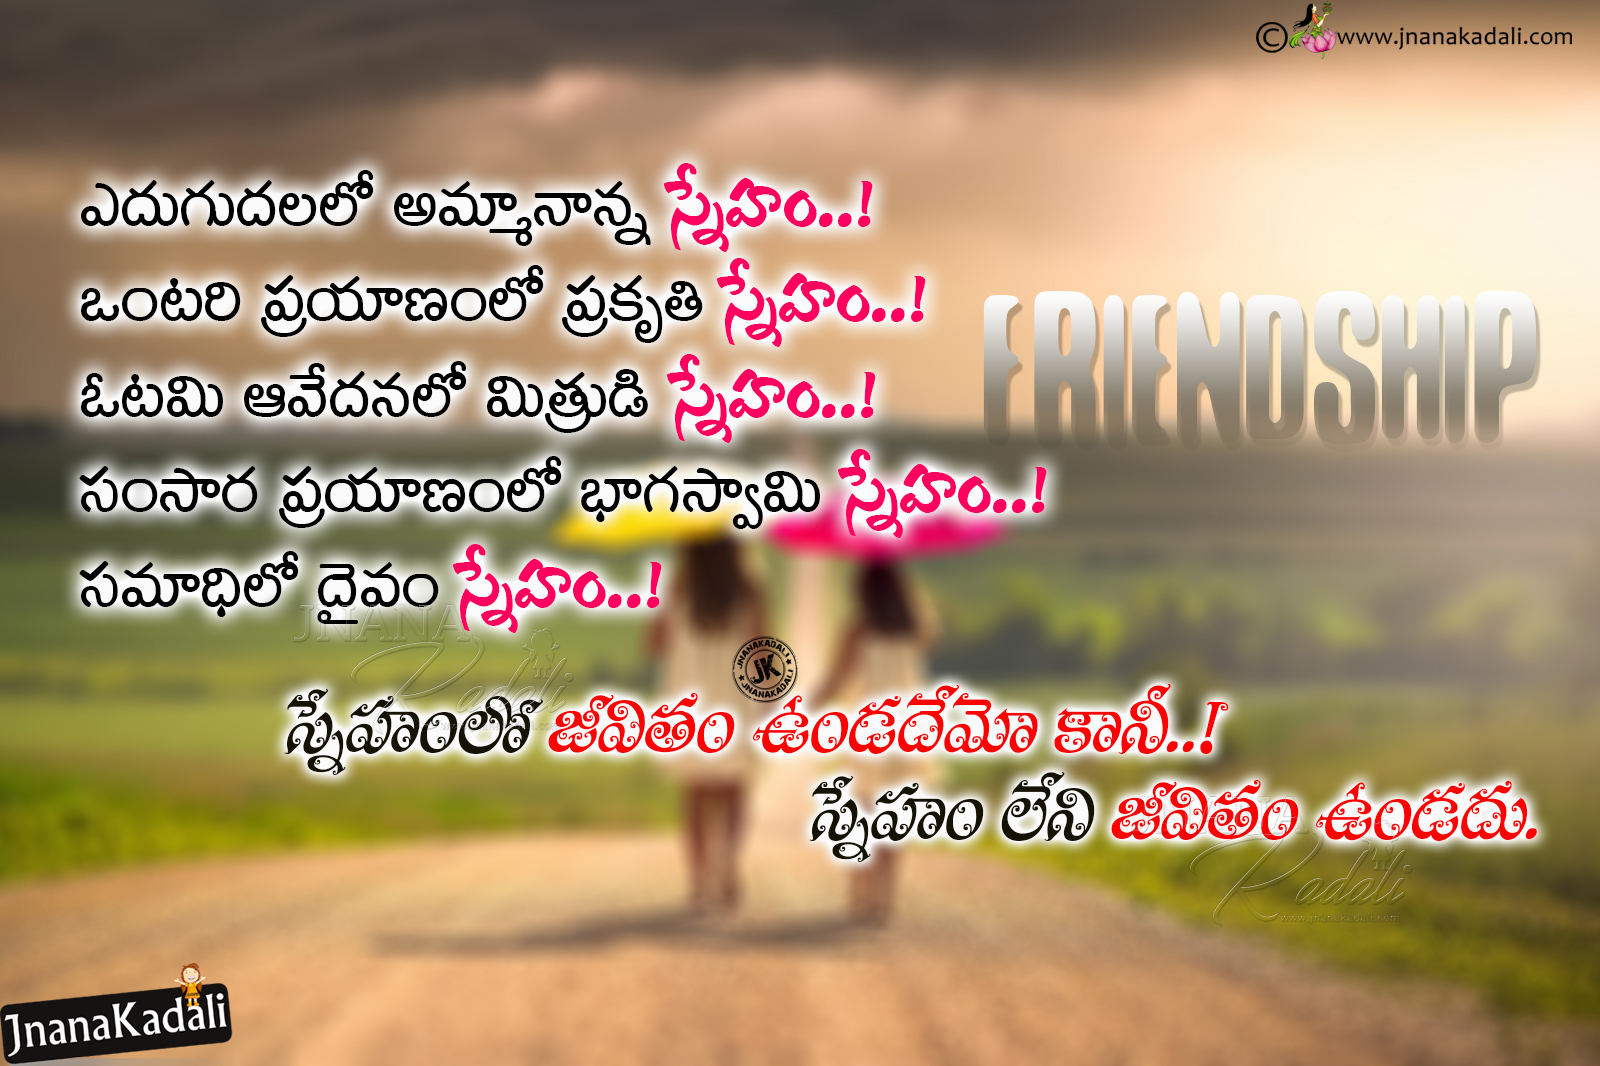 Touching Quotes About Friendship Classy Latest Best Telugu Friendship Heart Touching Quotes With Cute